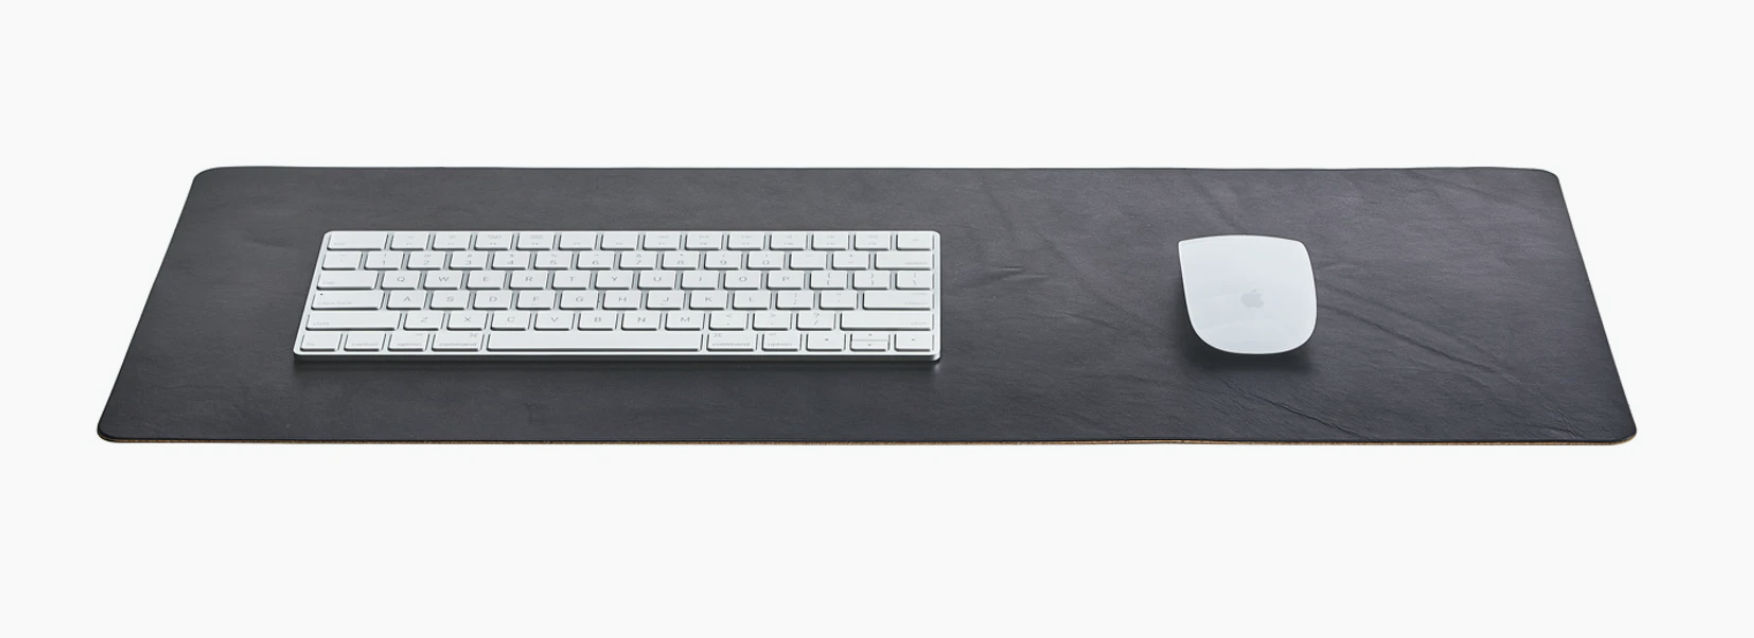 The Desk Pad